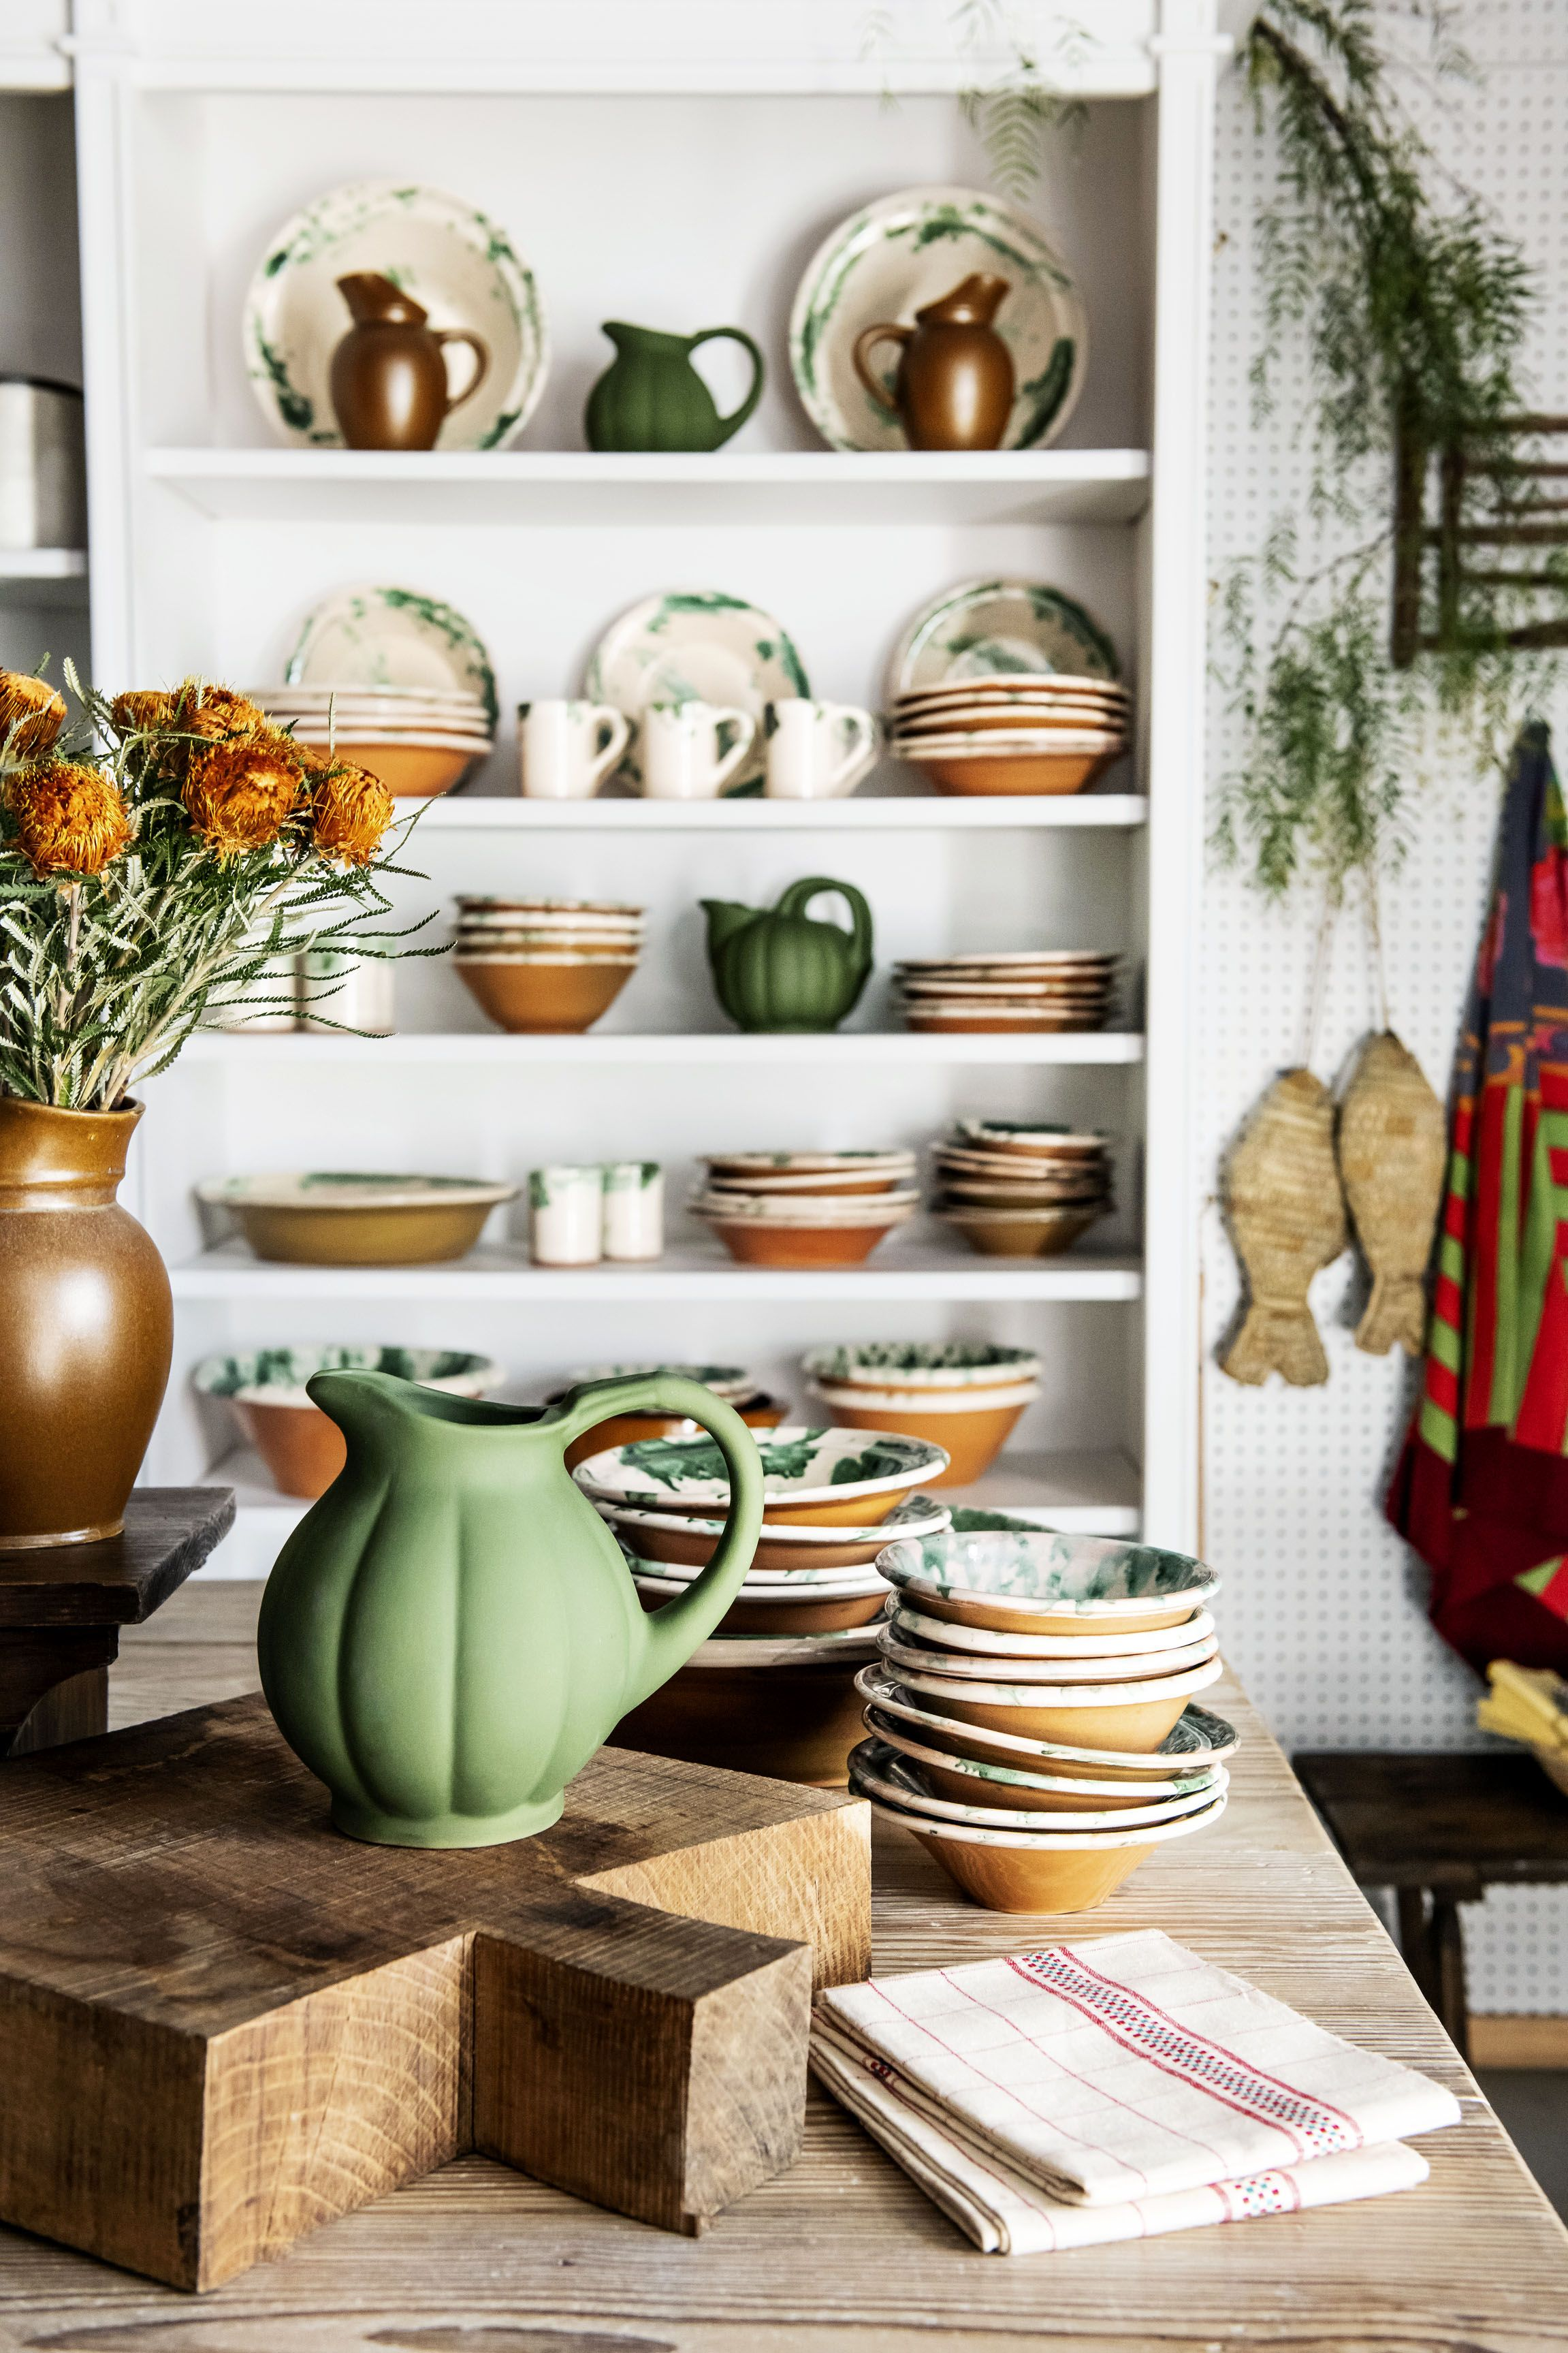 5 Design Store Owners Share the One Thing You Should Buy for Your Home